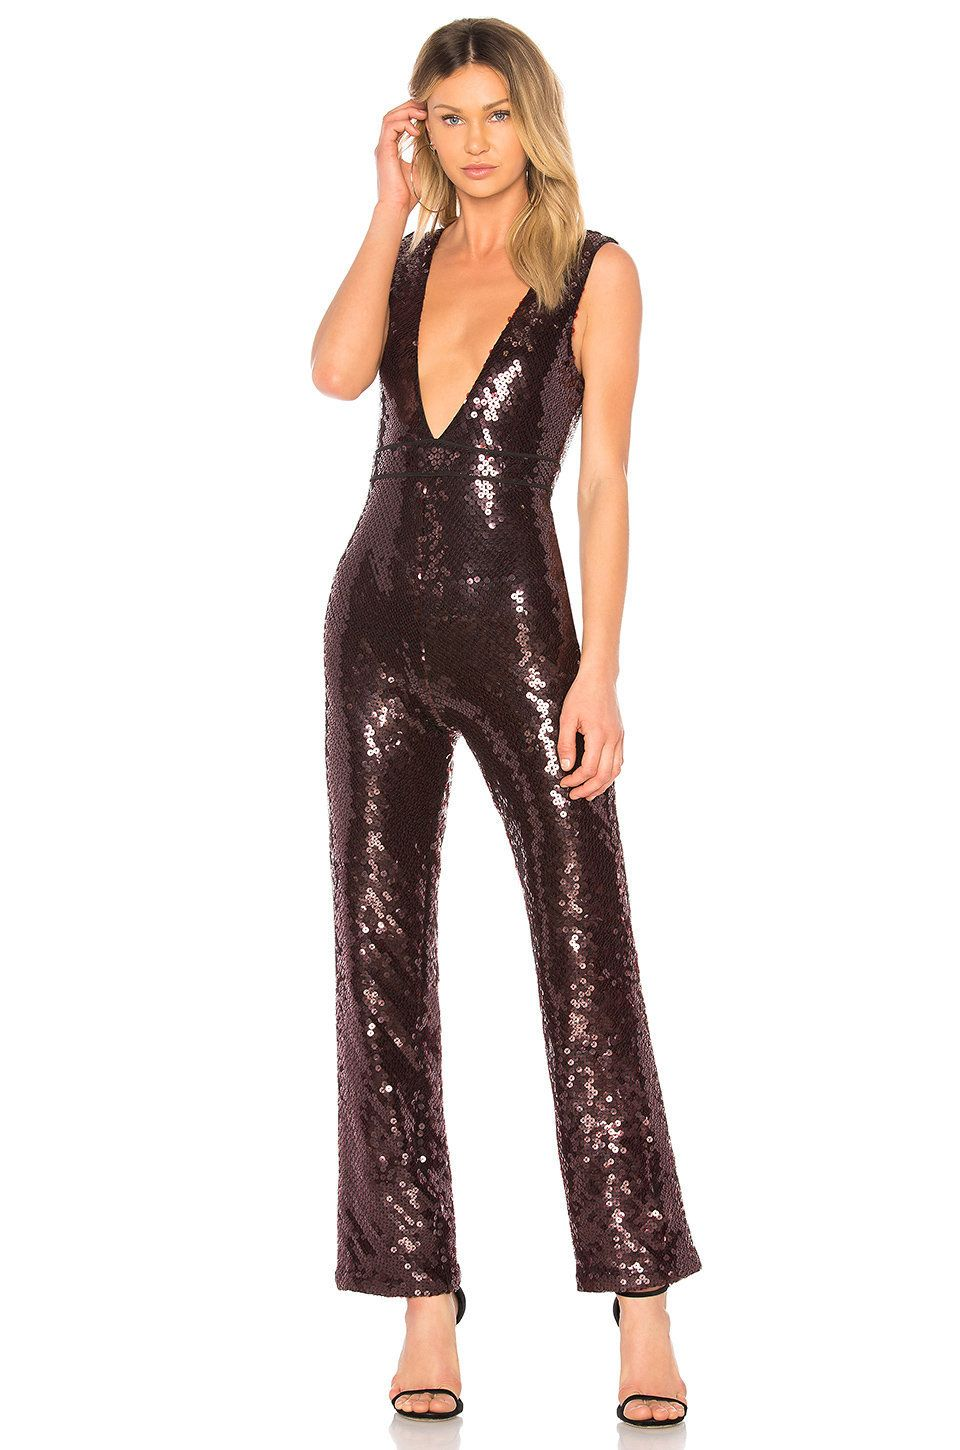 21 Formal Prom Jumpsuits For Girls Who Don't Do Dresses ...